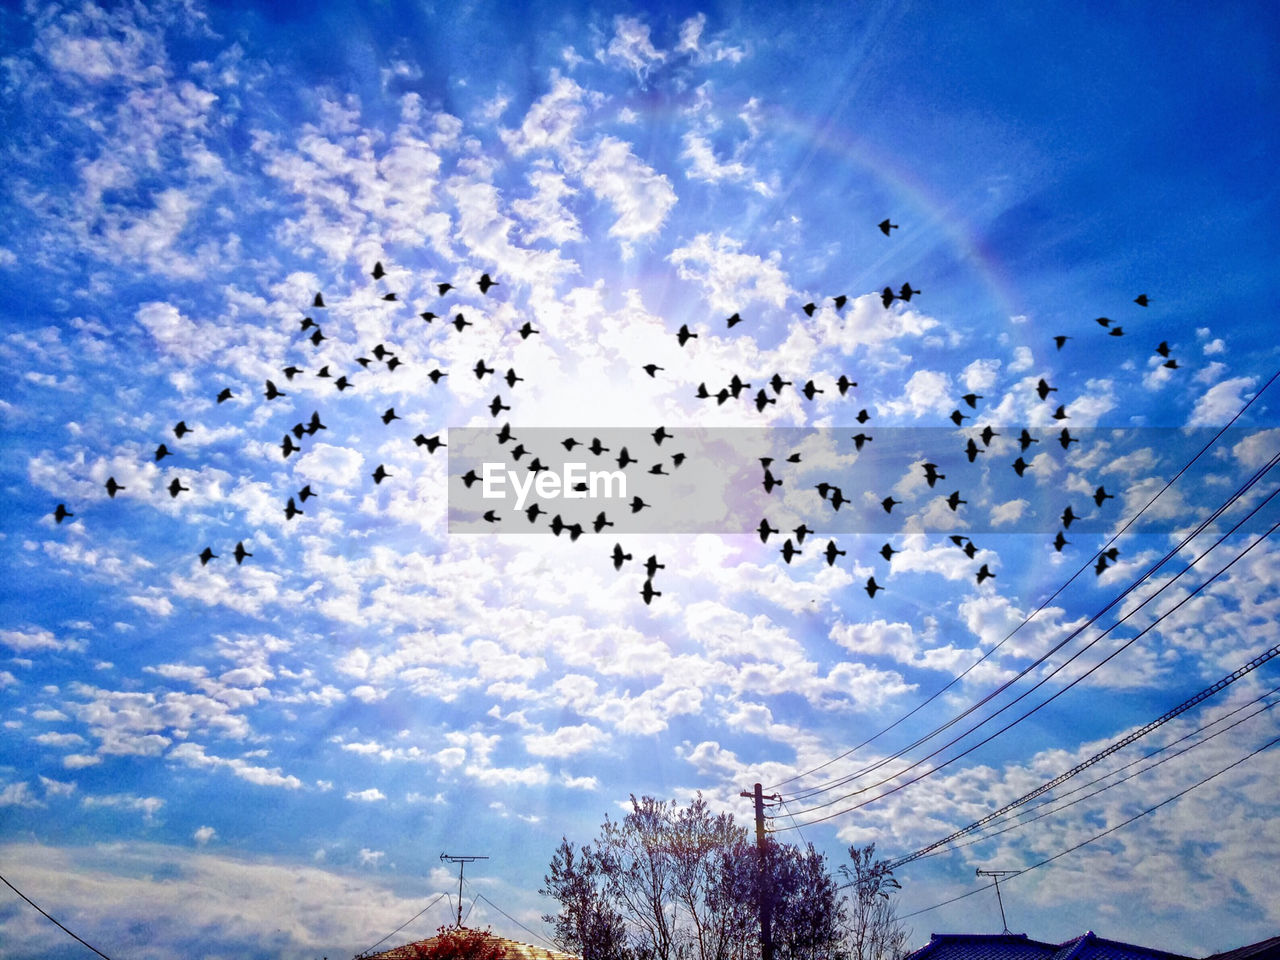 sky, cloud - sky, low angle view, flying, celebration, flock of birds, day, blue, mid-air, outdoors, large group of animals, no people, nature, beauty in nature, bird